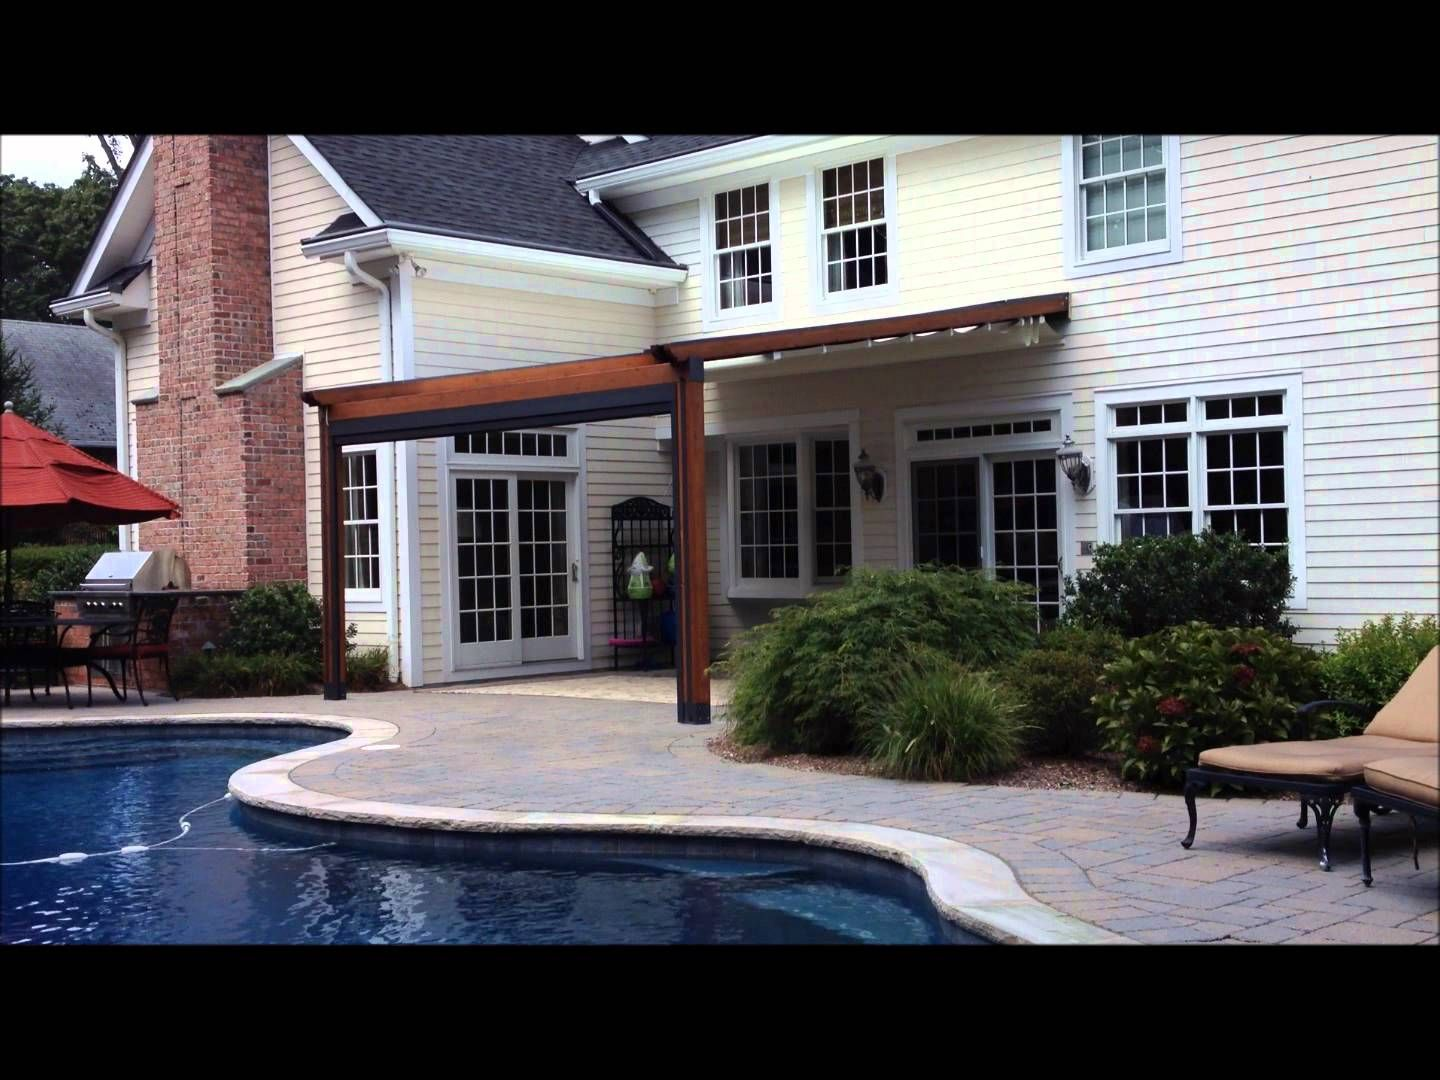 The Gennius, A Waterproof Retractable Awning By Durasol Awnings Was  Selected By This Homeowner For Aesthetics And Function, With A Solar Screen  Drop Shade ...